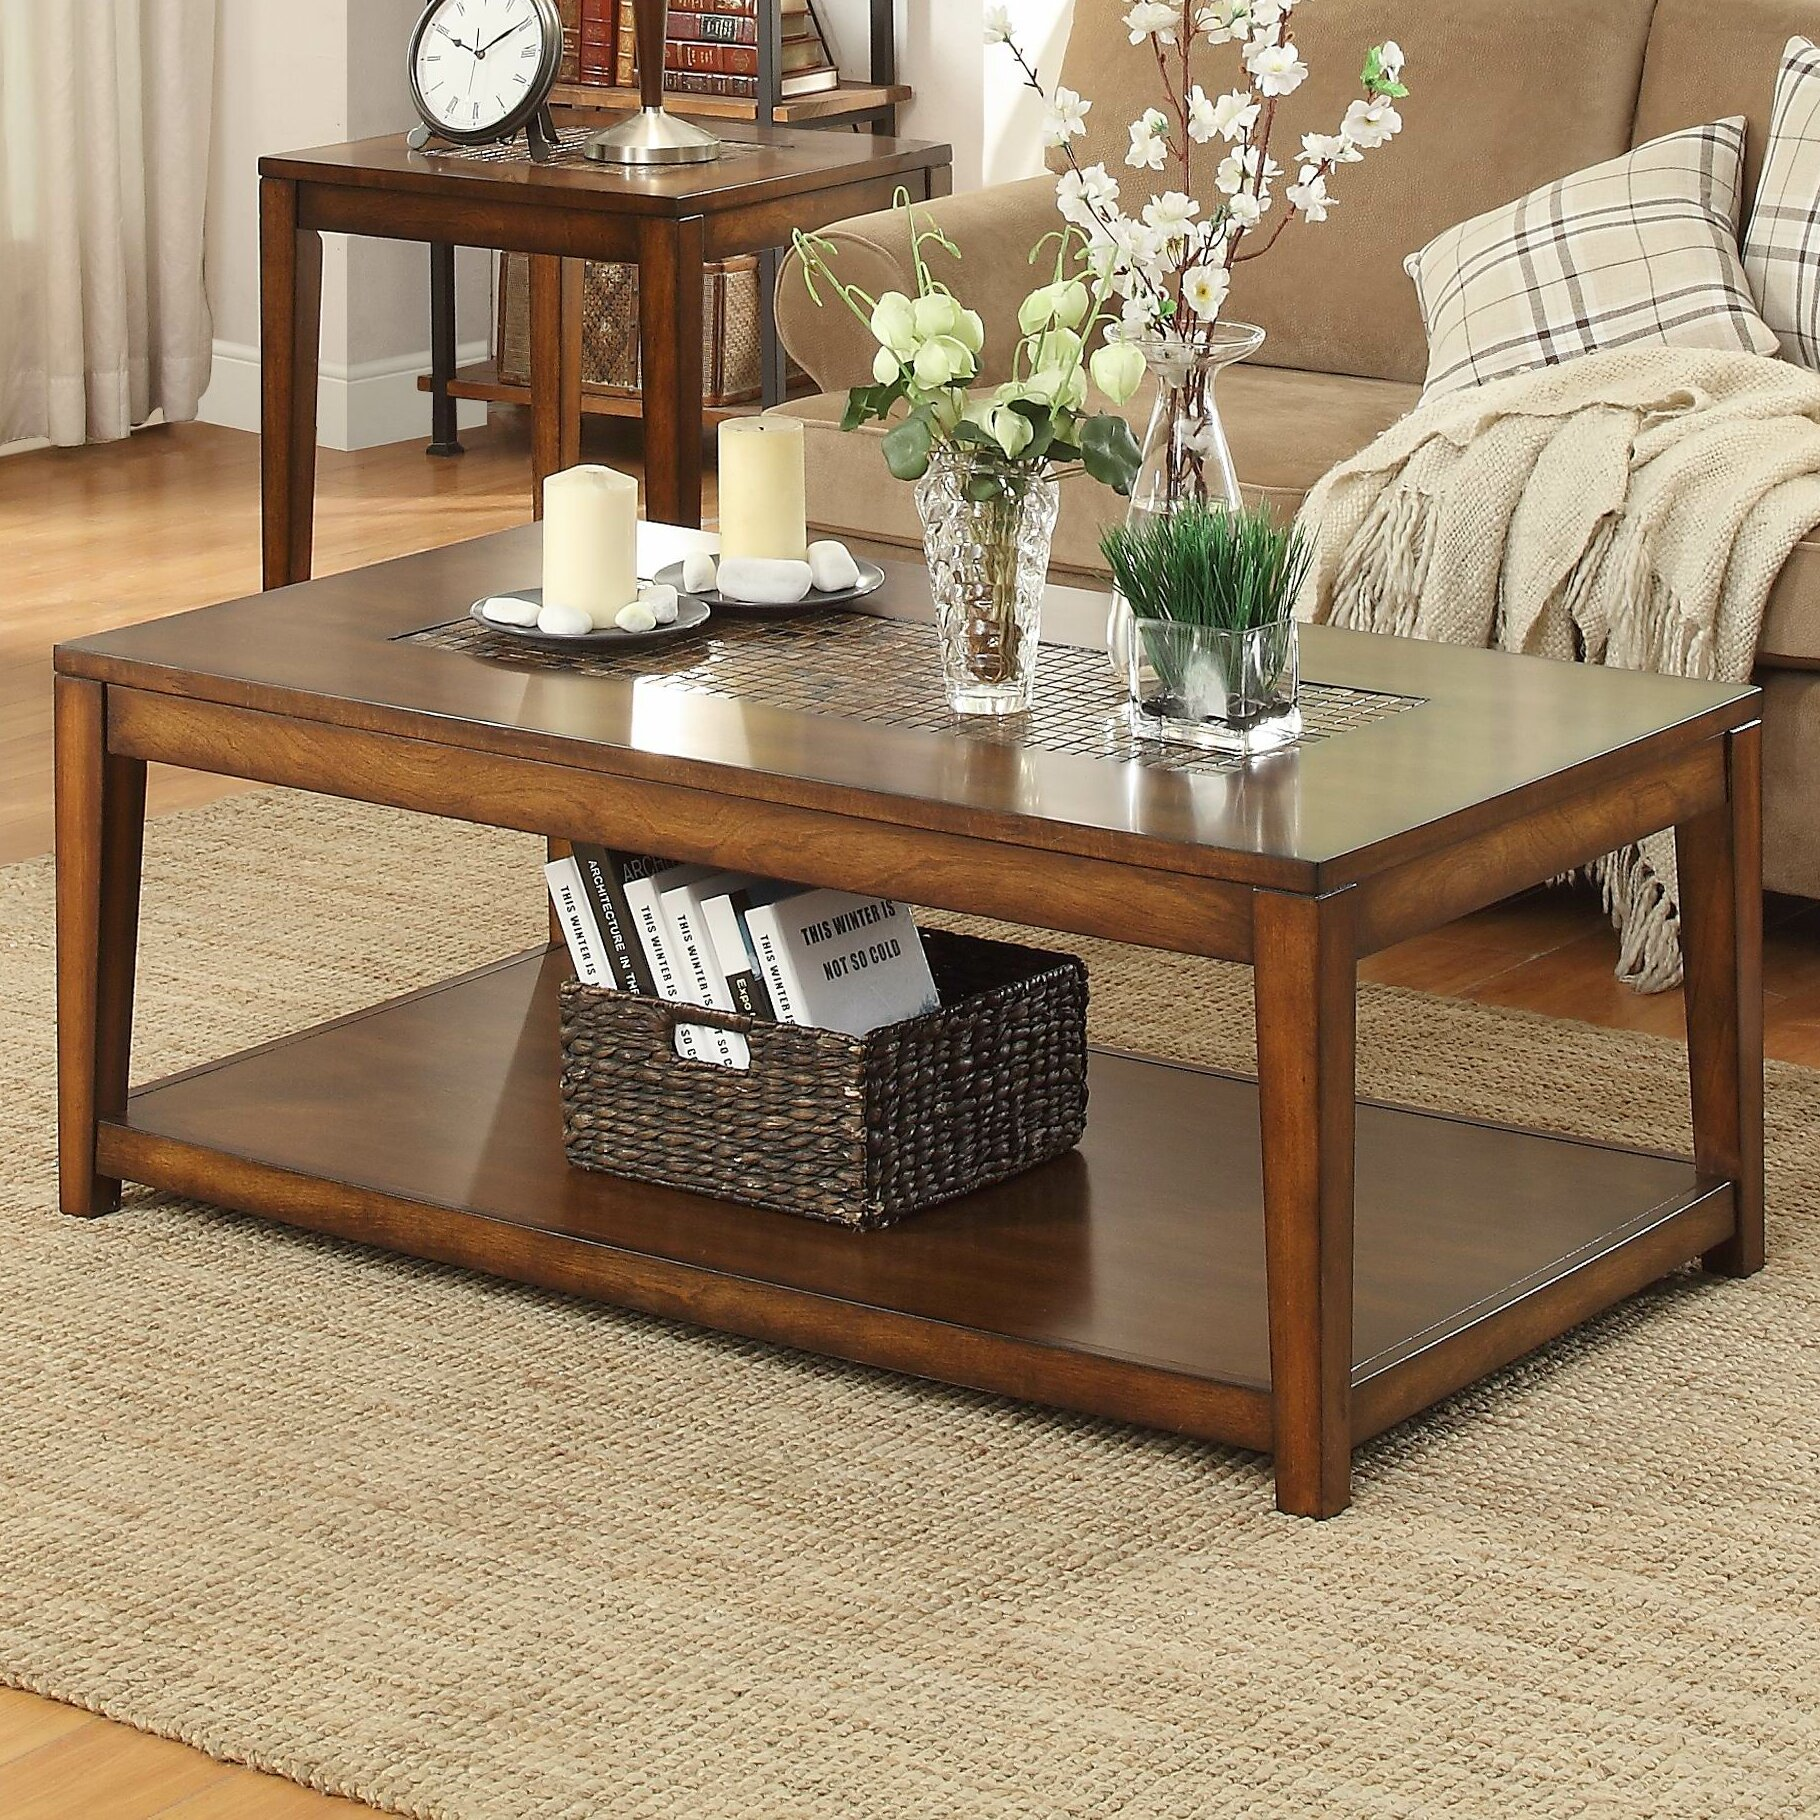 Woodhaven hill antoni coffee table wayfair - Woodbridge home designs avalon coffee table ...